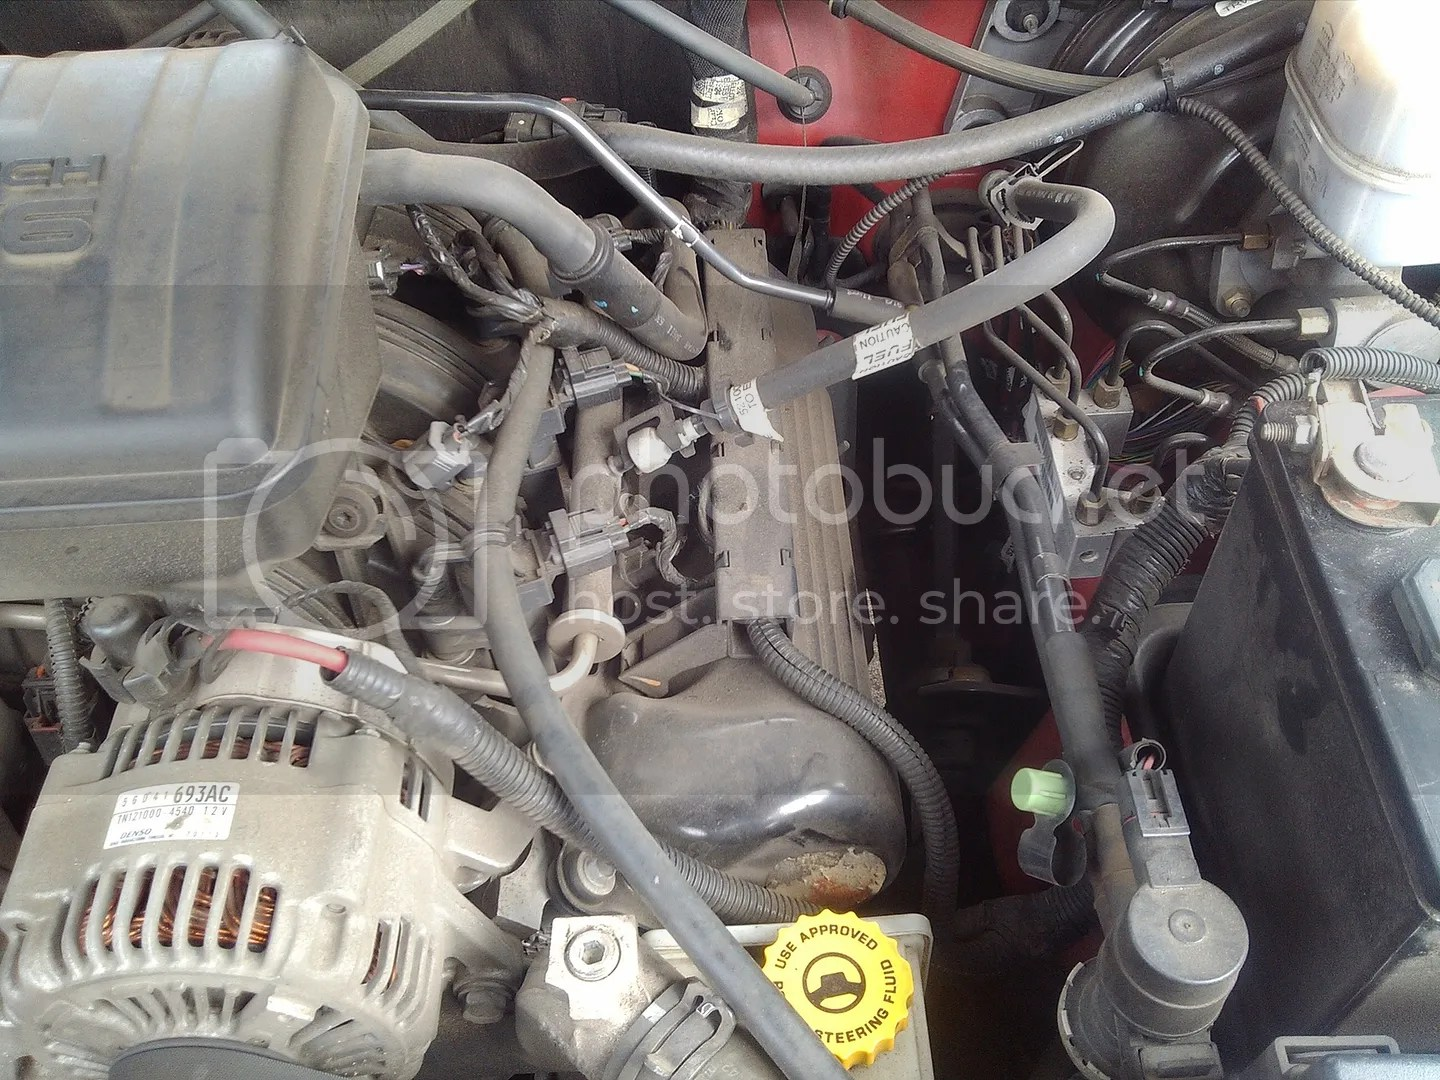 hight resolution of wrg 1887 jeep liberty engine hose diagramjeep liberty power steering hoses and reservoir this image